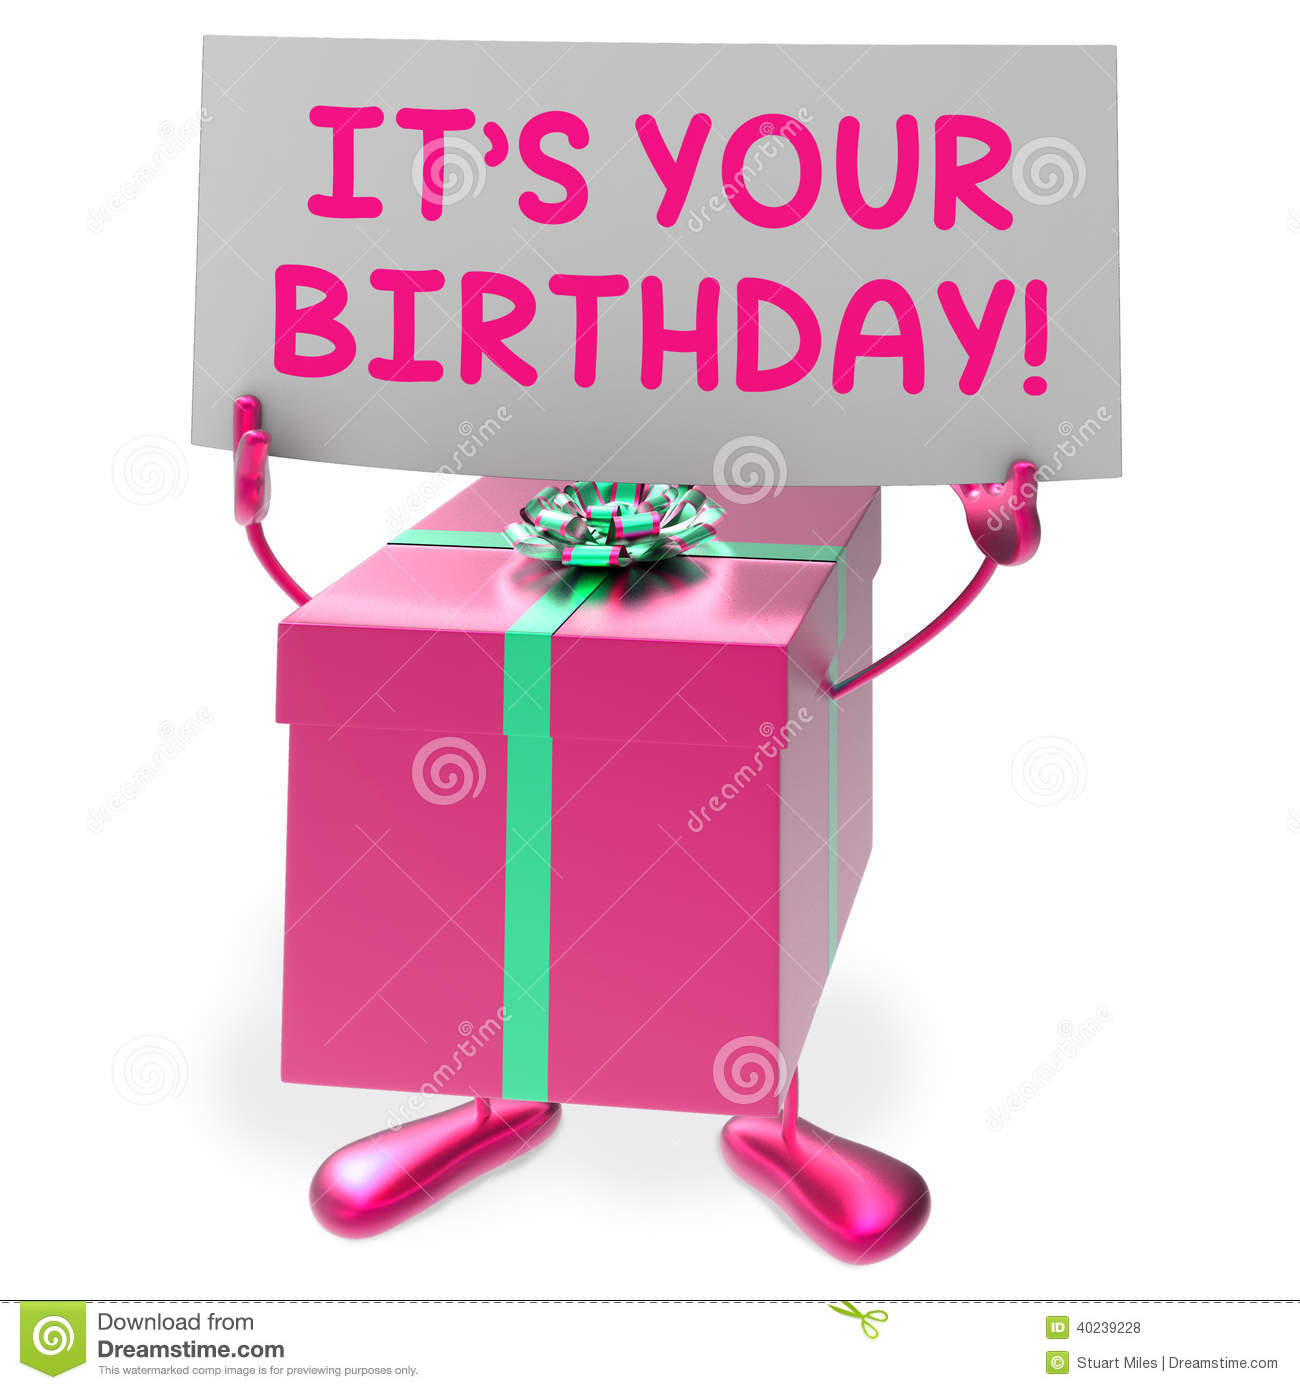 birthday today sign ; s-your-birthday-sign-means-presents-gifts-meaning-40239228